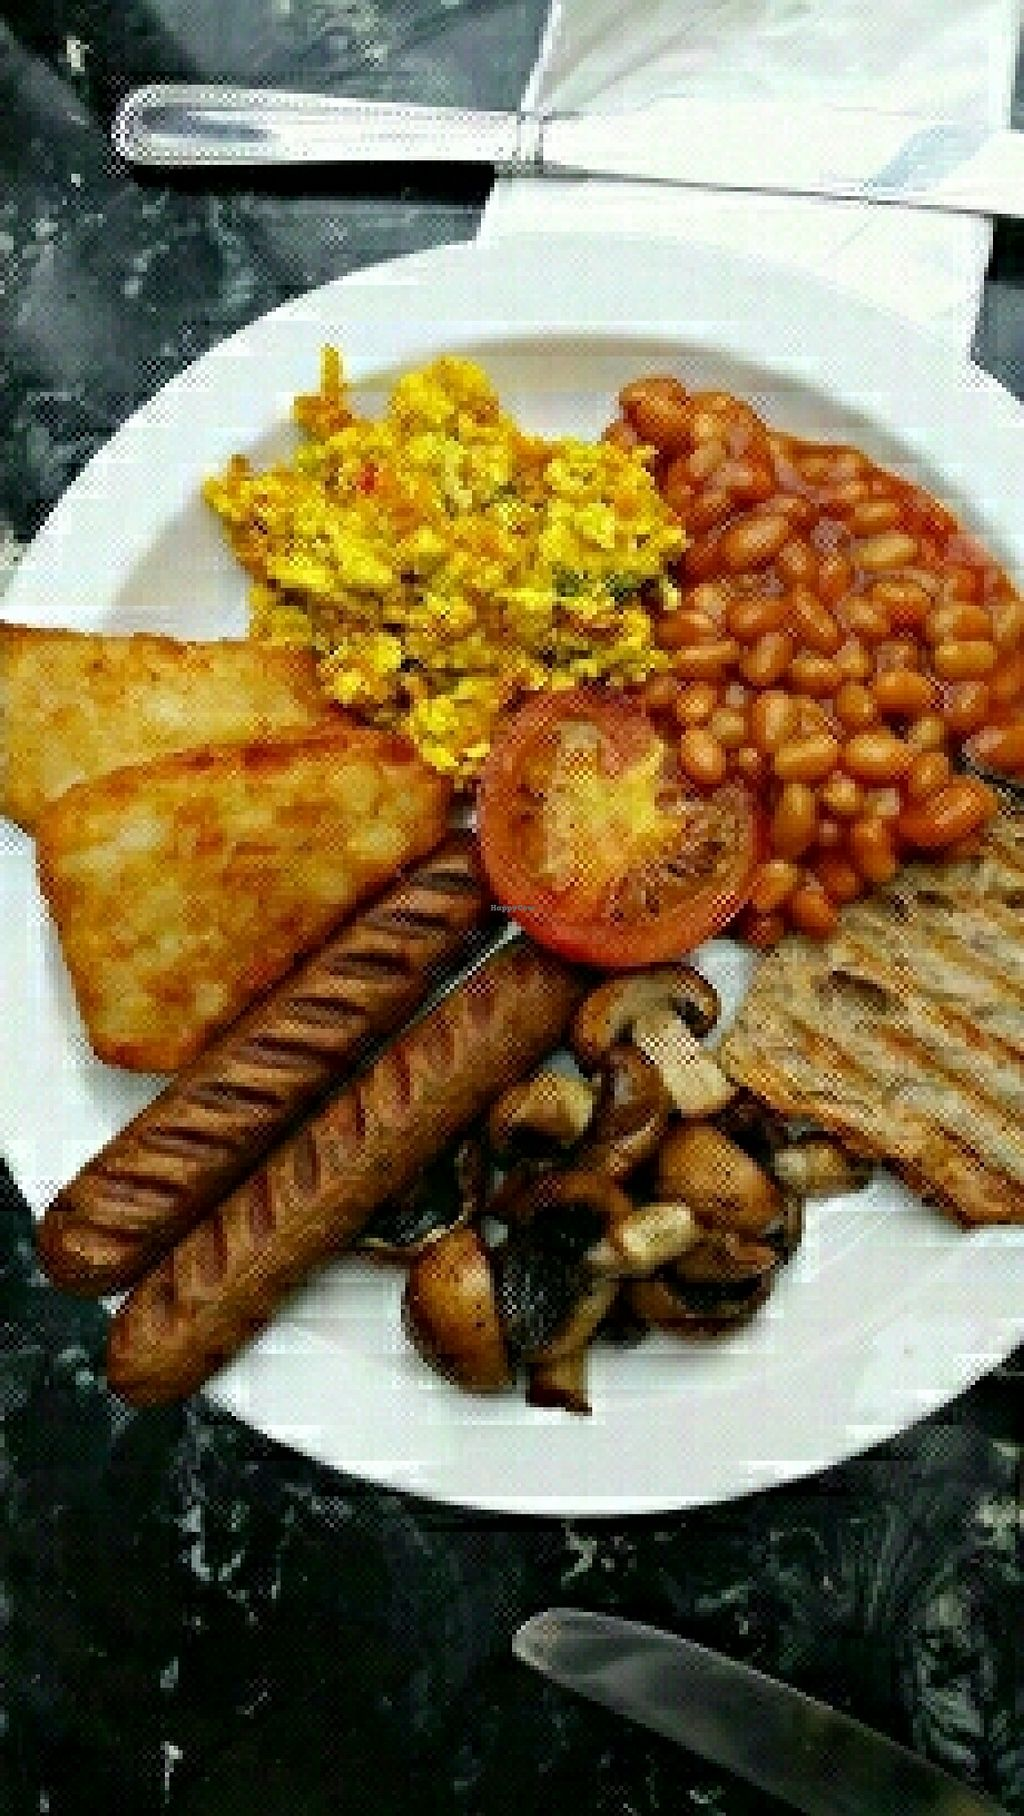 """Photo of The Gallery Cafe  by <a href=""""/members/profile/uschiverena"""">uschiverena</a> <br/>super tasty vegan English breakfast  <br/> April 21, 2016  - <a href='/contact/abuse/image/3676/145552'>Report</a>"""